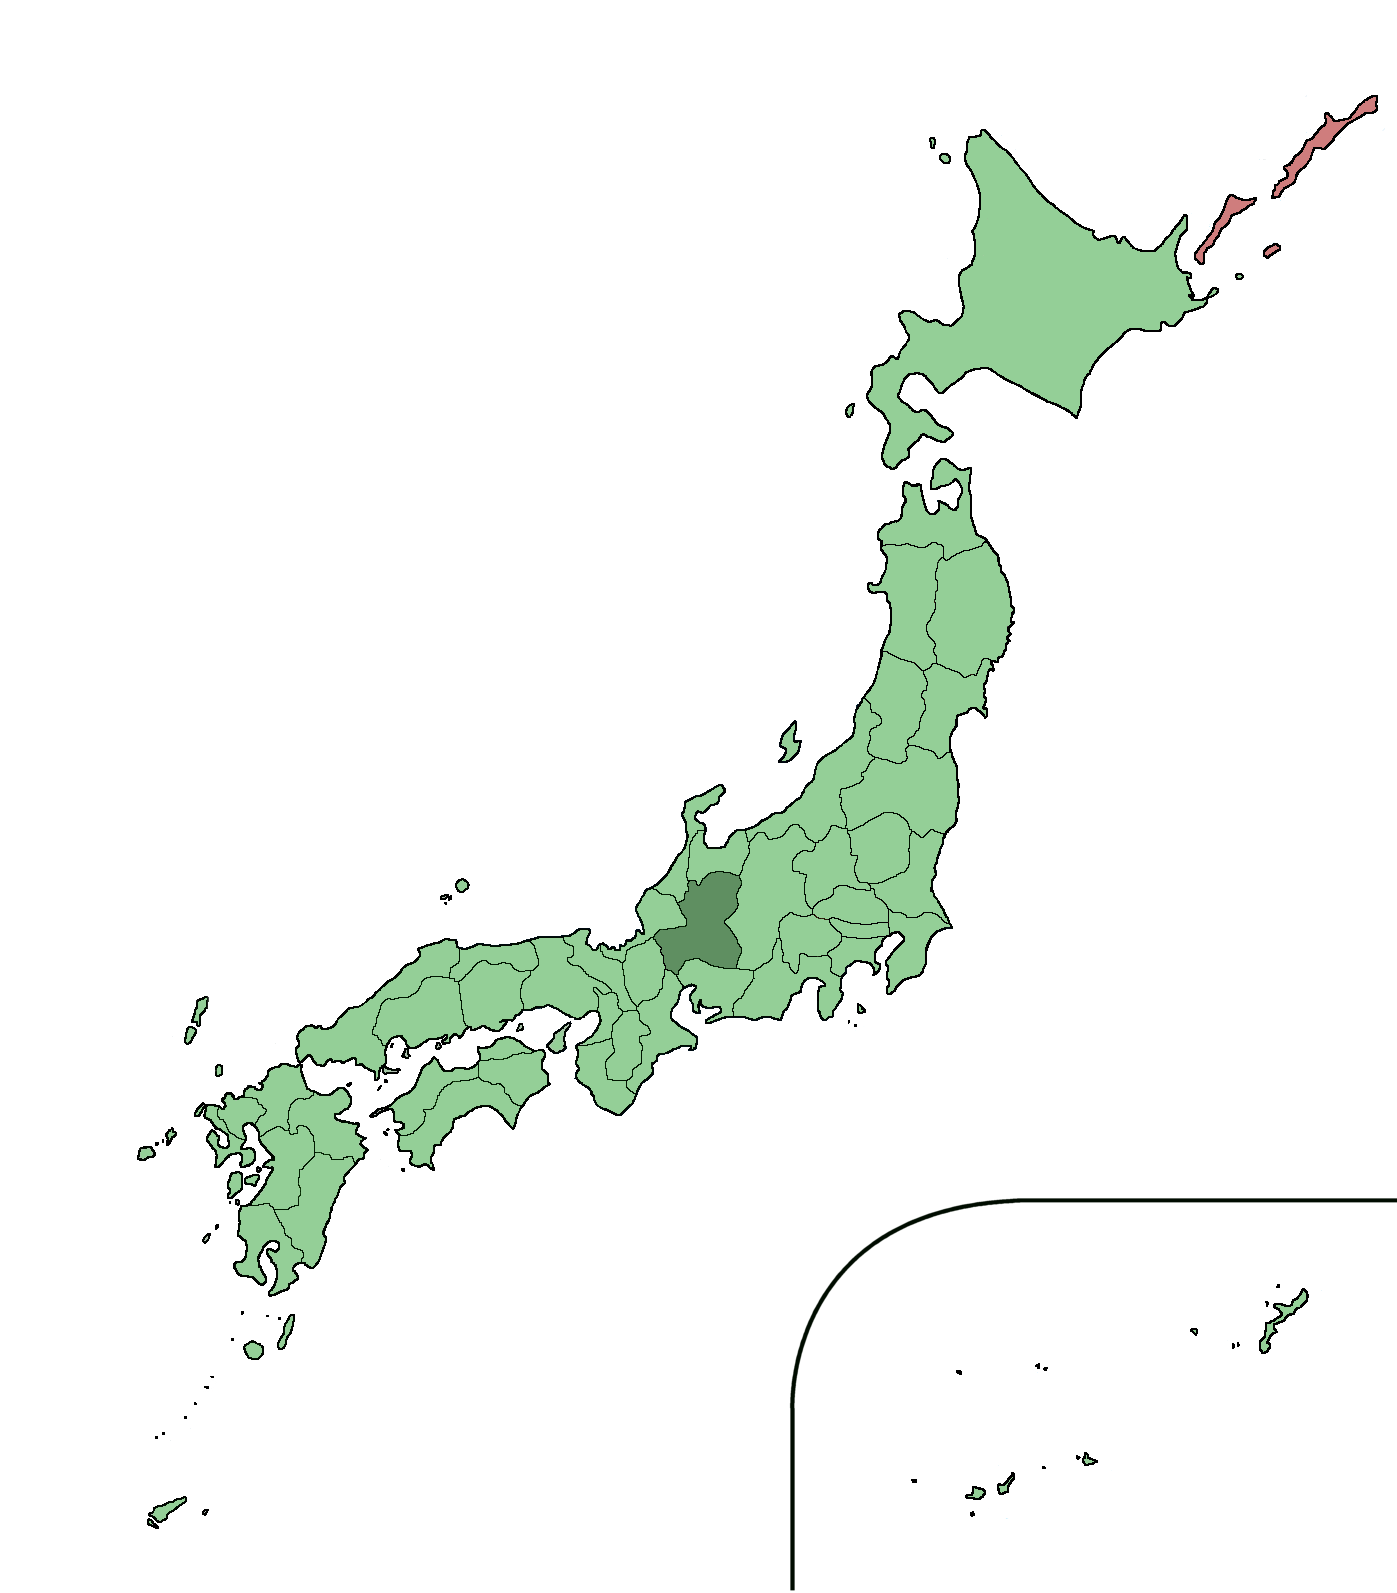 FileJapan Gifu Largepng Wikimedia Commons - Japan map gifu